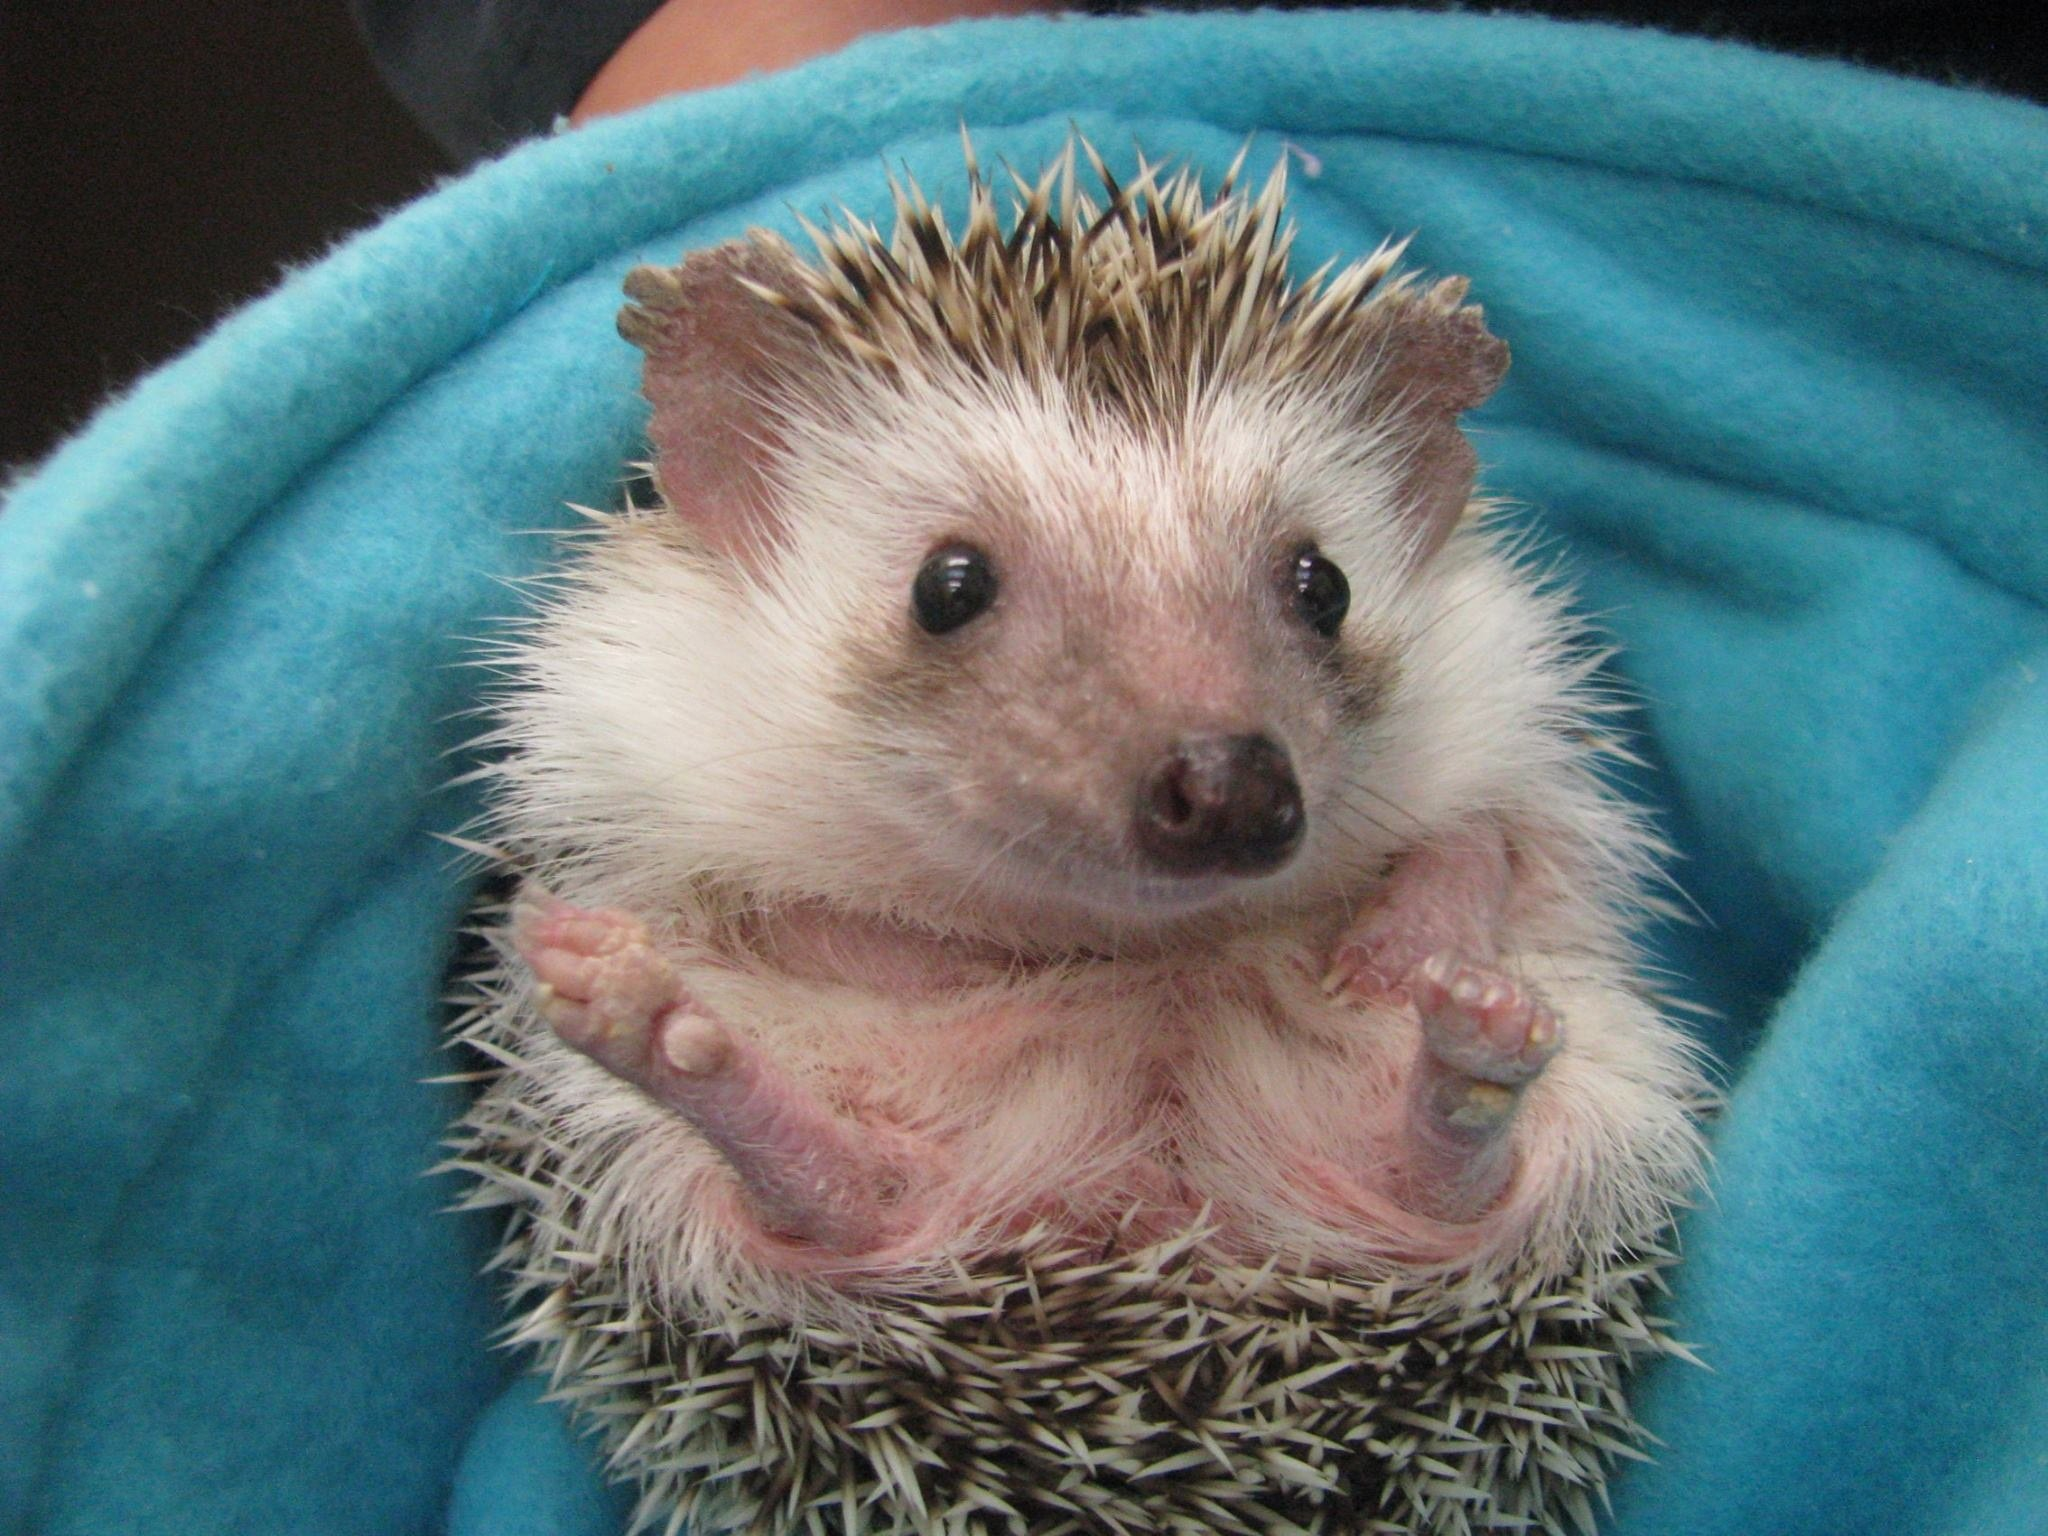 Hedgehog in blanket